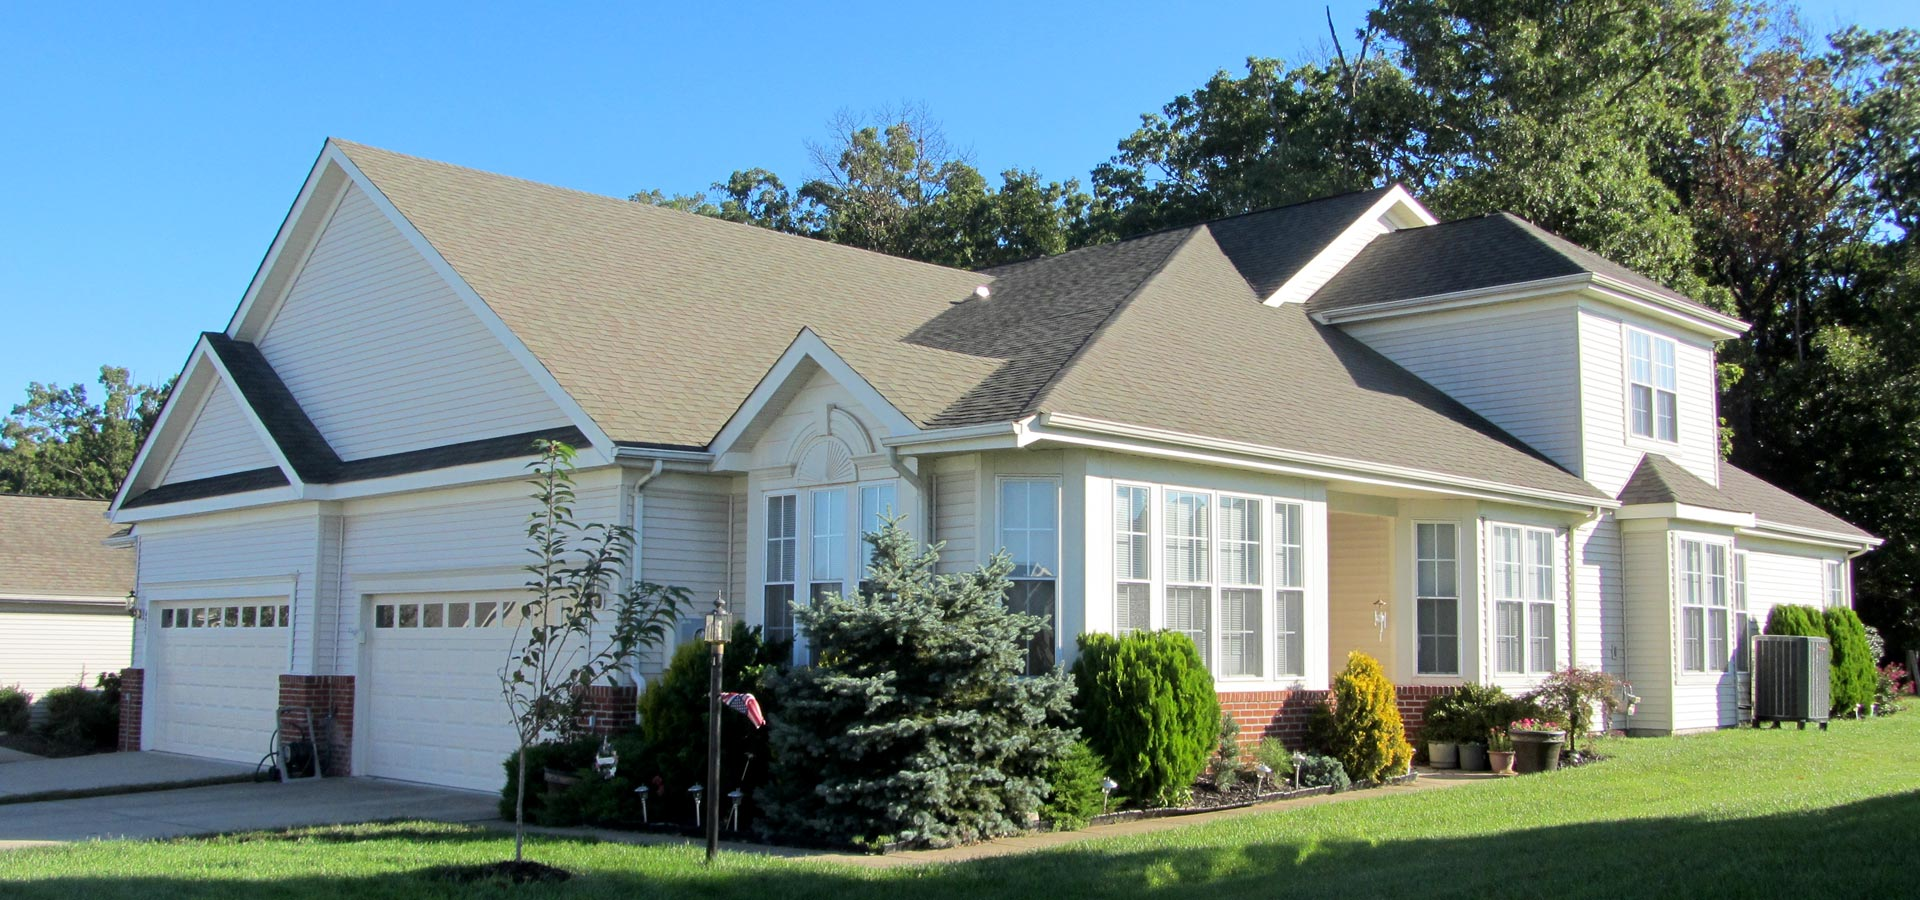 Roofing Contractor Northern Virginia Roof Repair